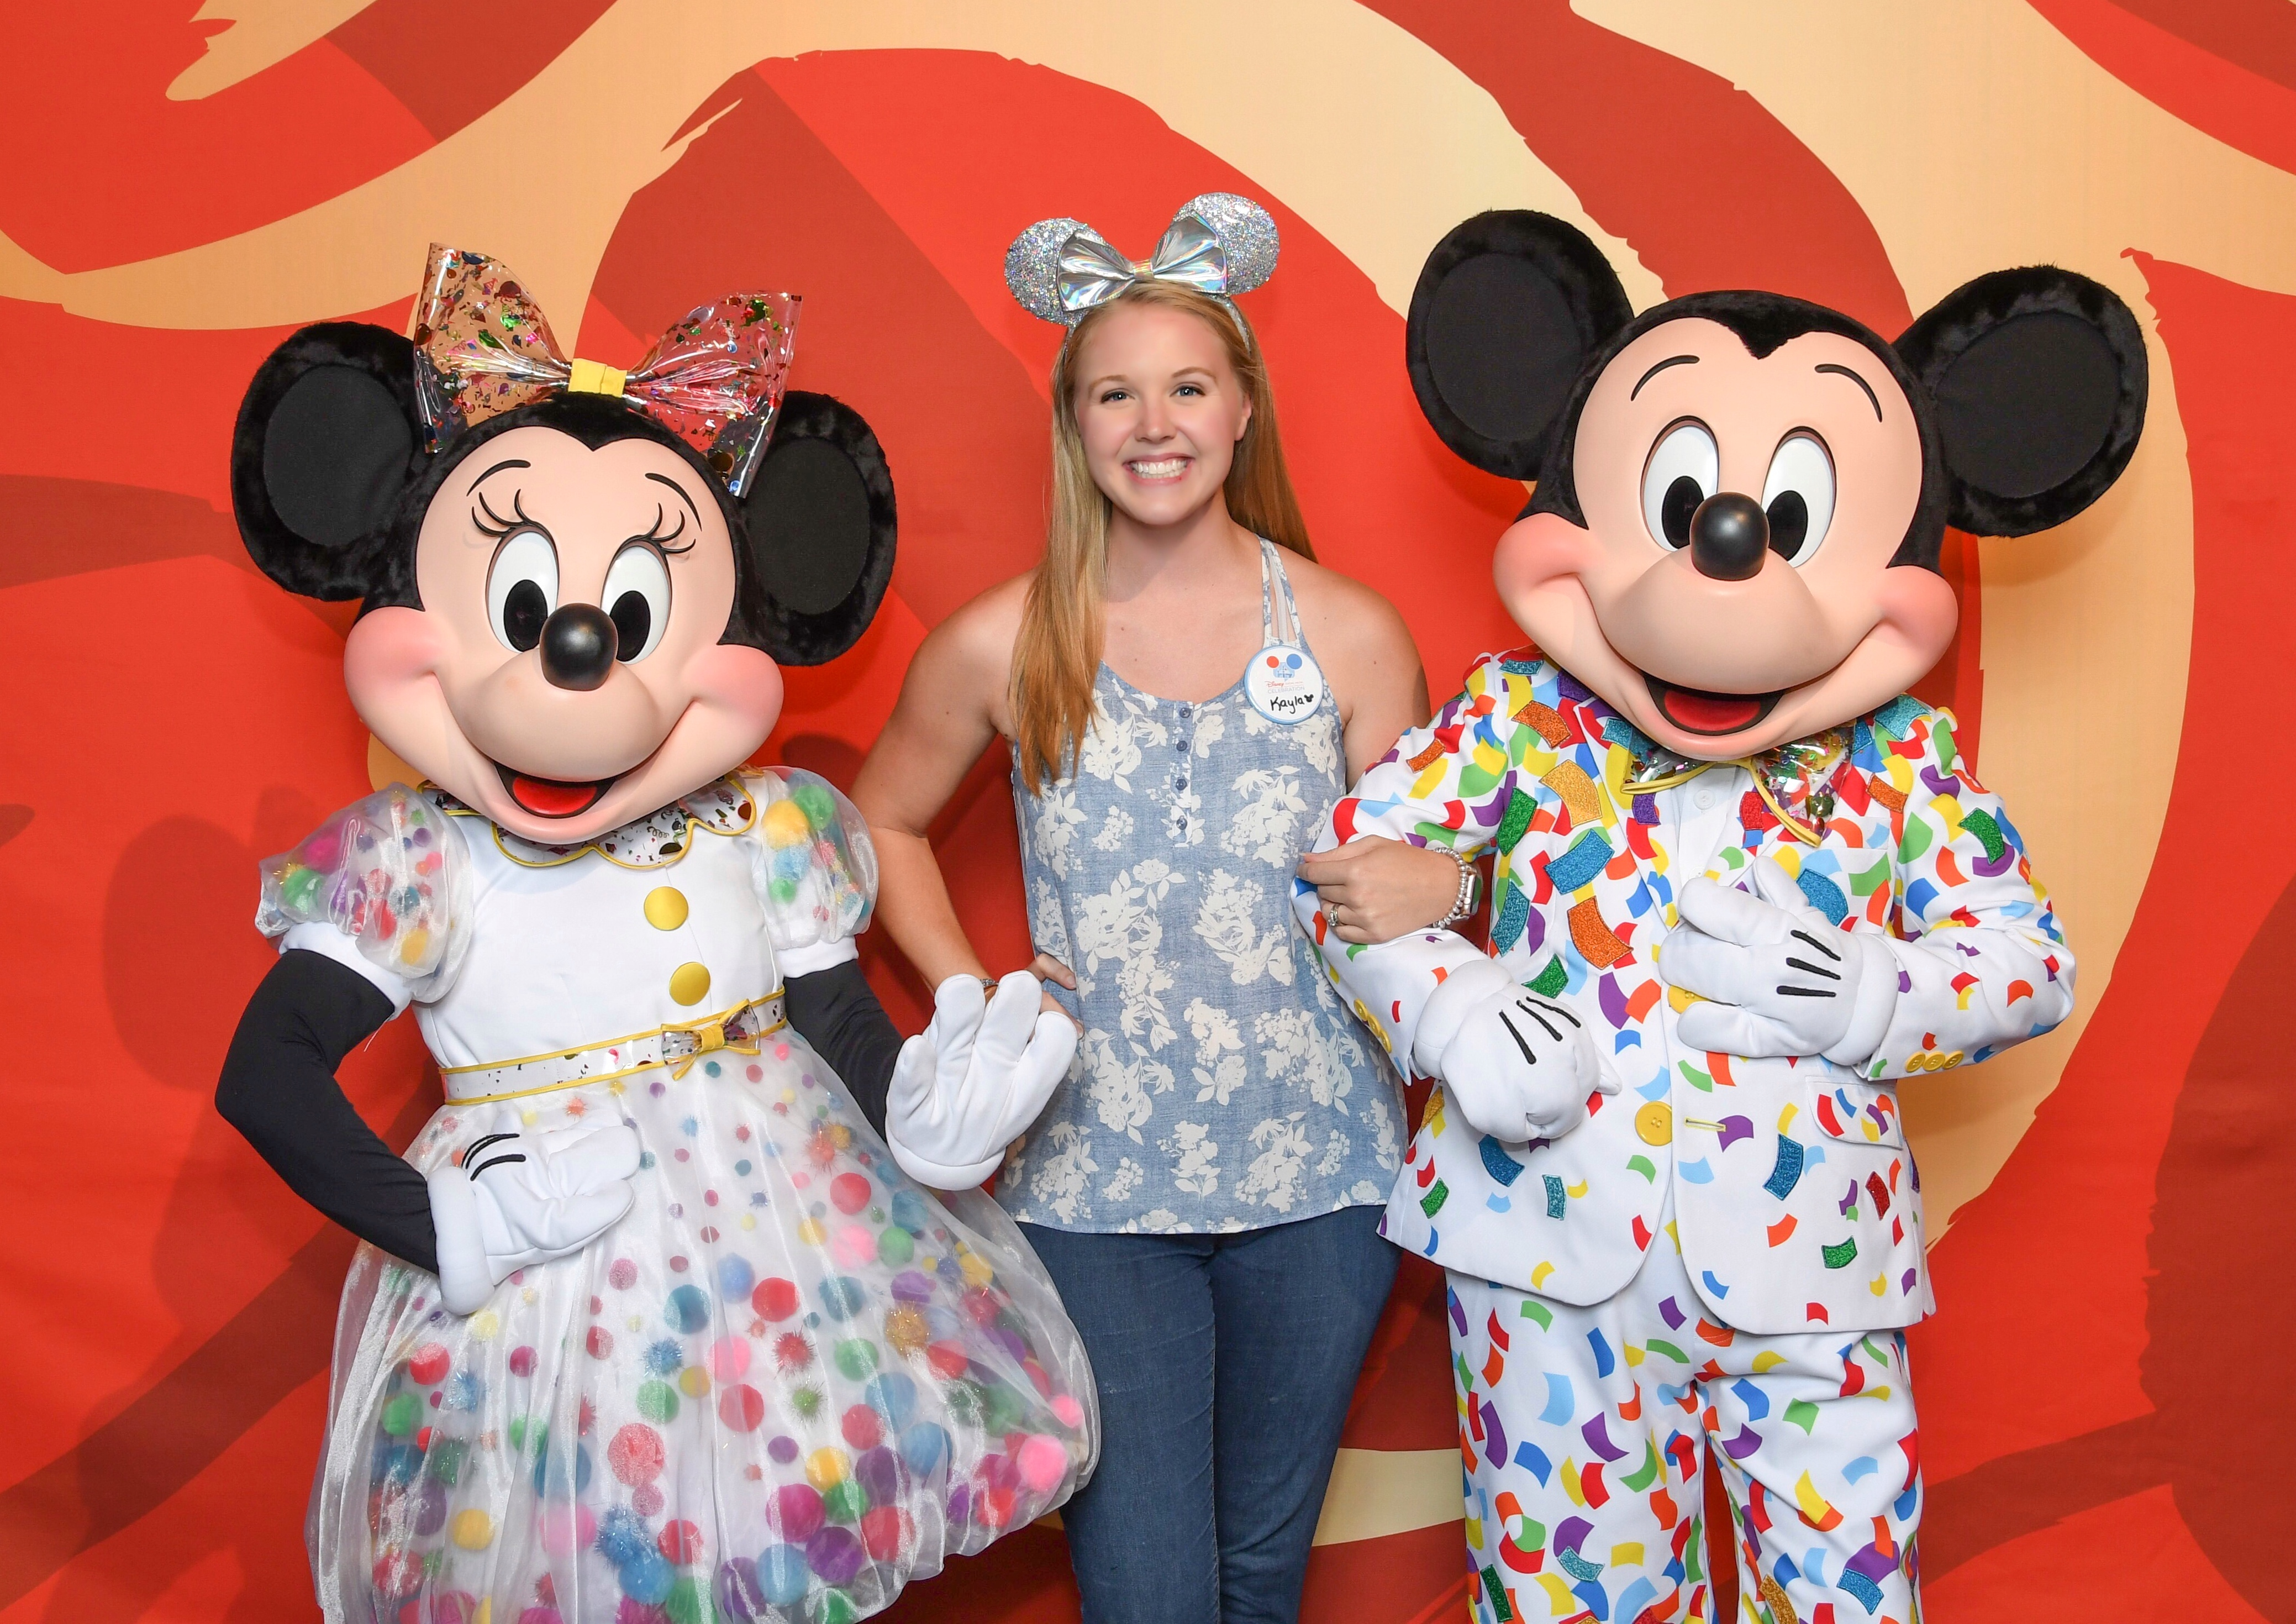 Lessons from #DisneySMC The Ultimate Disney Bloggers Conference